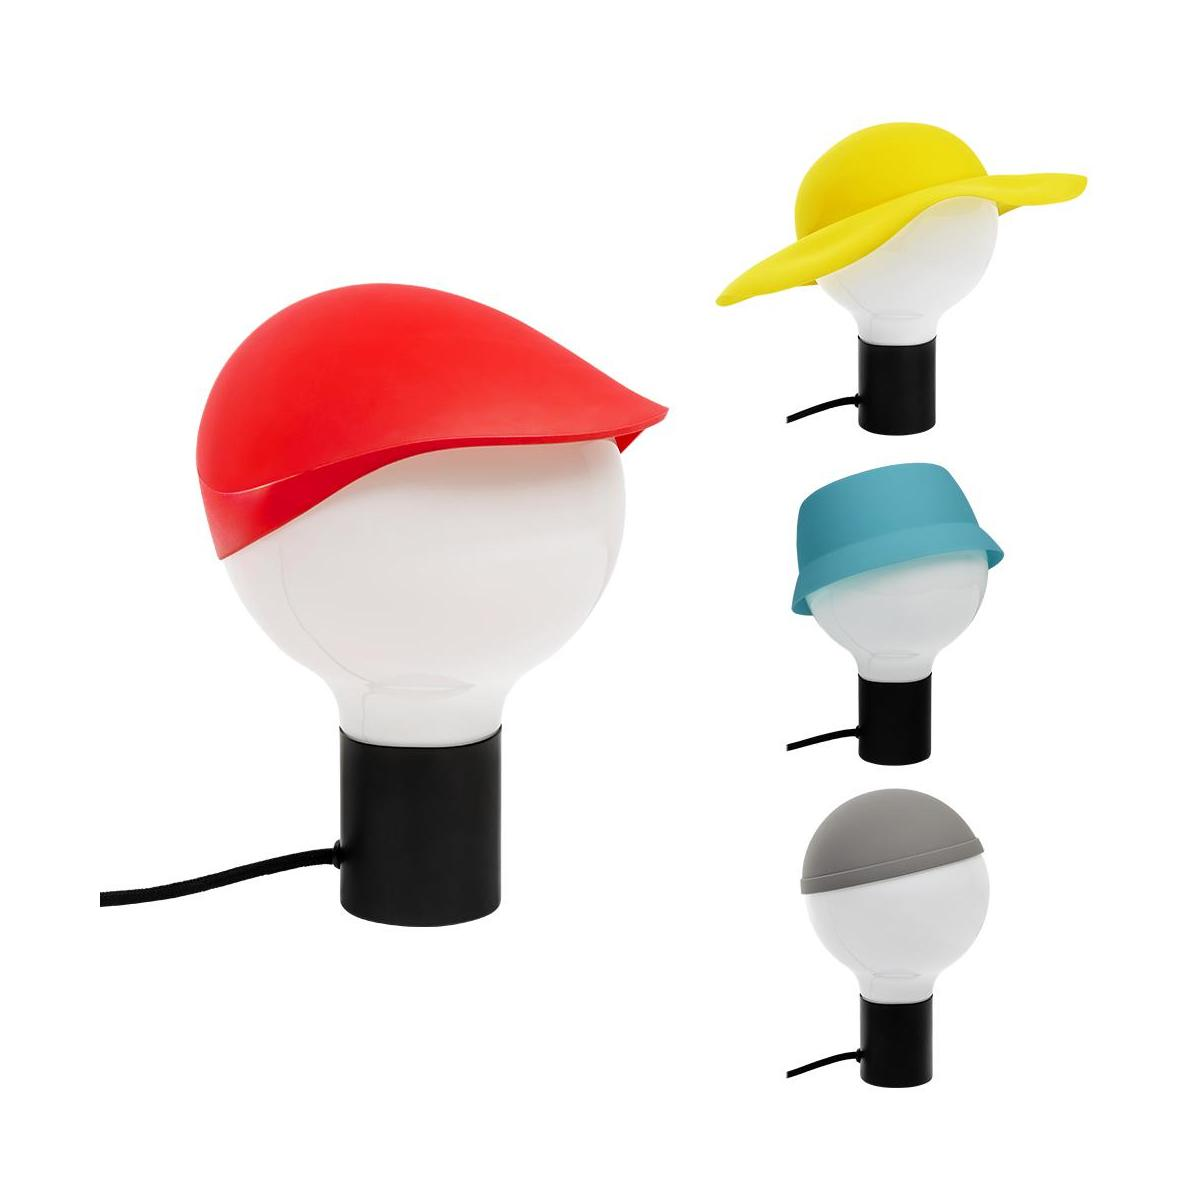 funky lampe de bureau avec chapeaux en silicone habitat. Black Bedroom Furniture Sets. Home Design Ideas